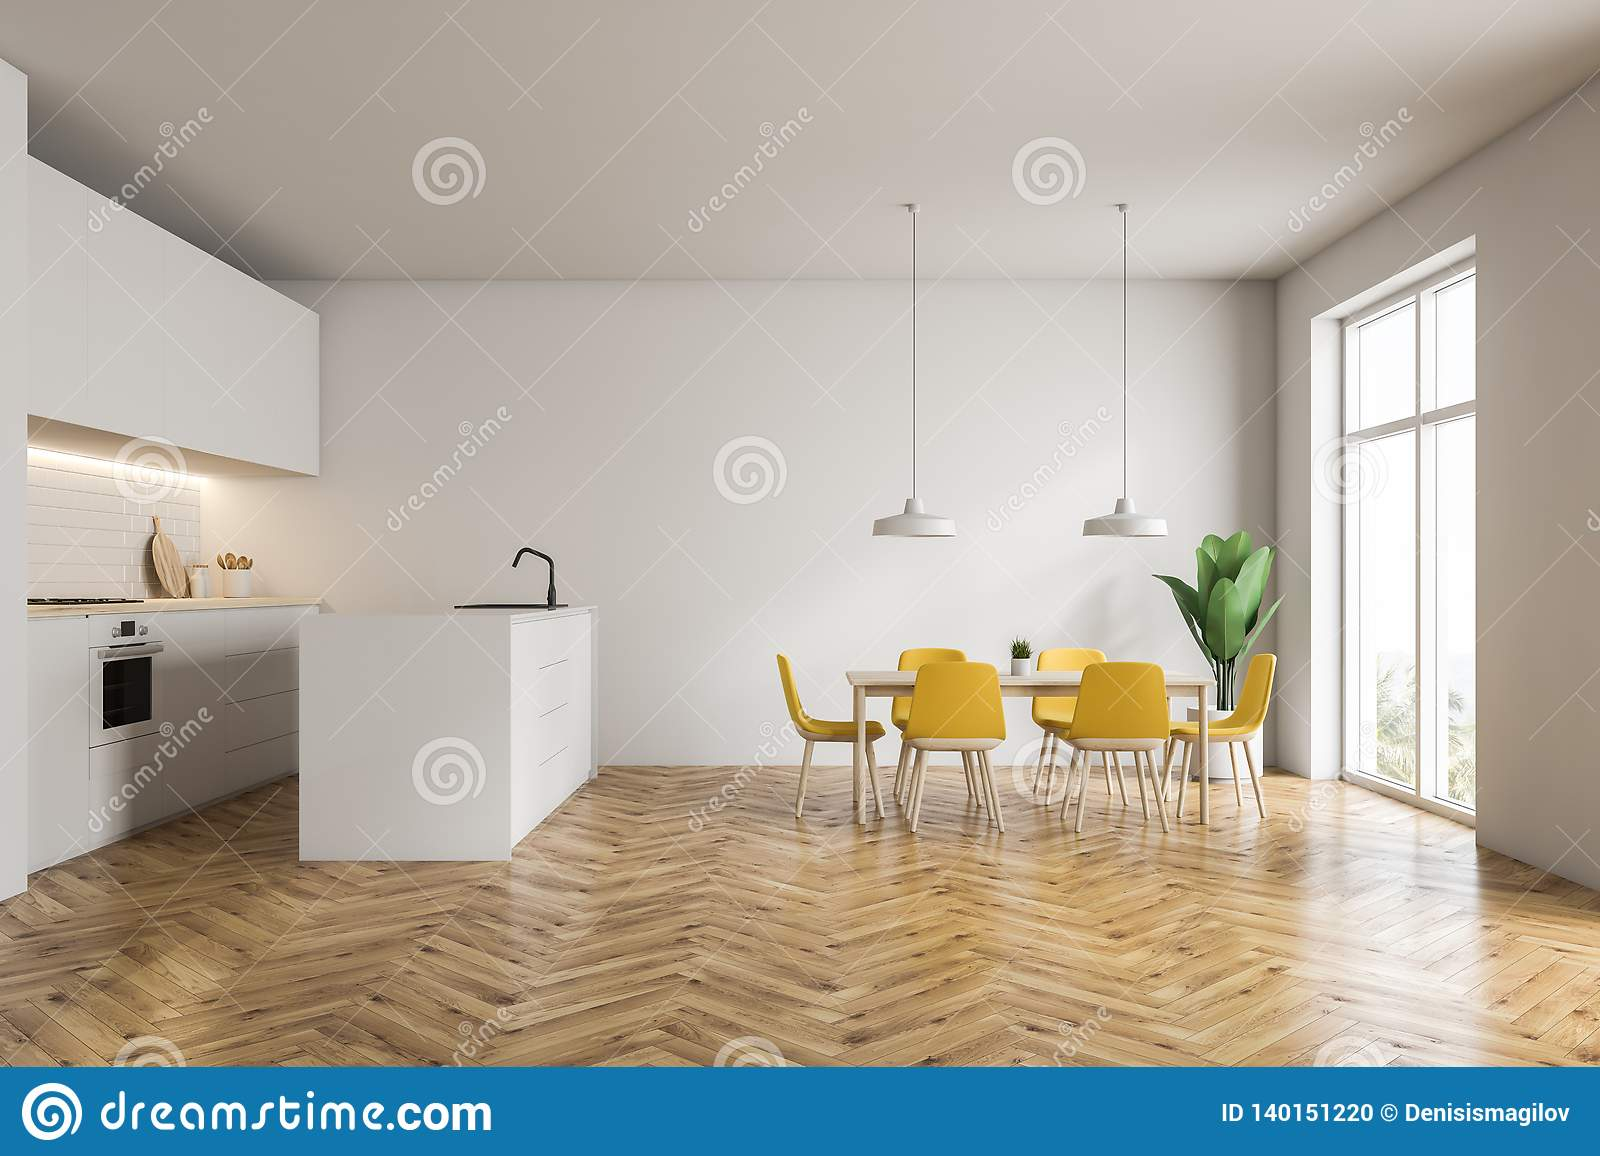 White Kitchen With Bar, Table And Countertops Stock Illustration ...